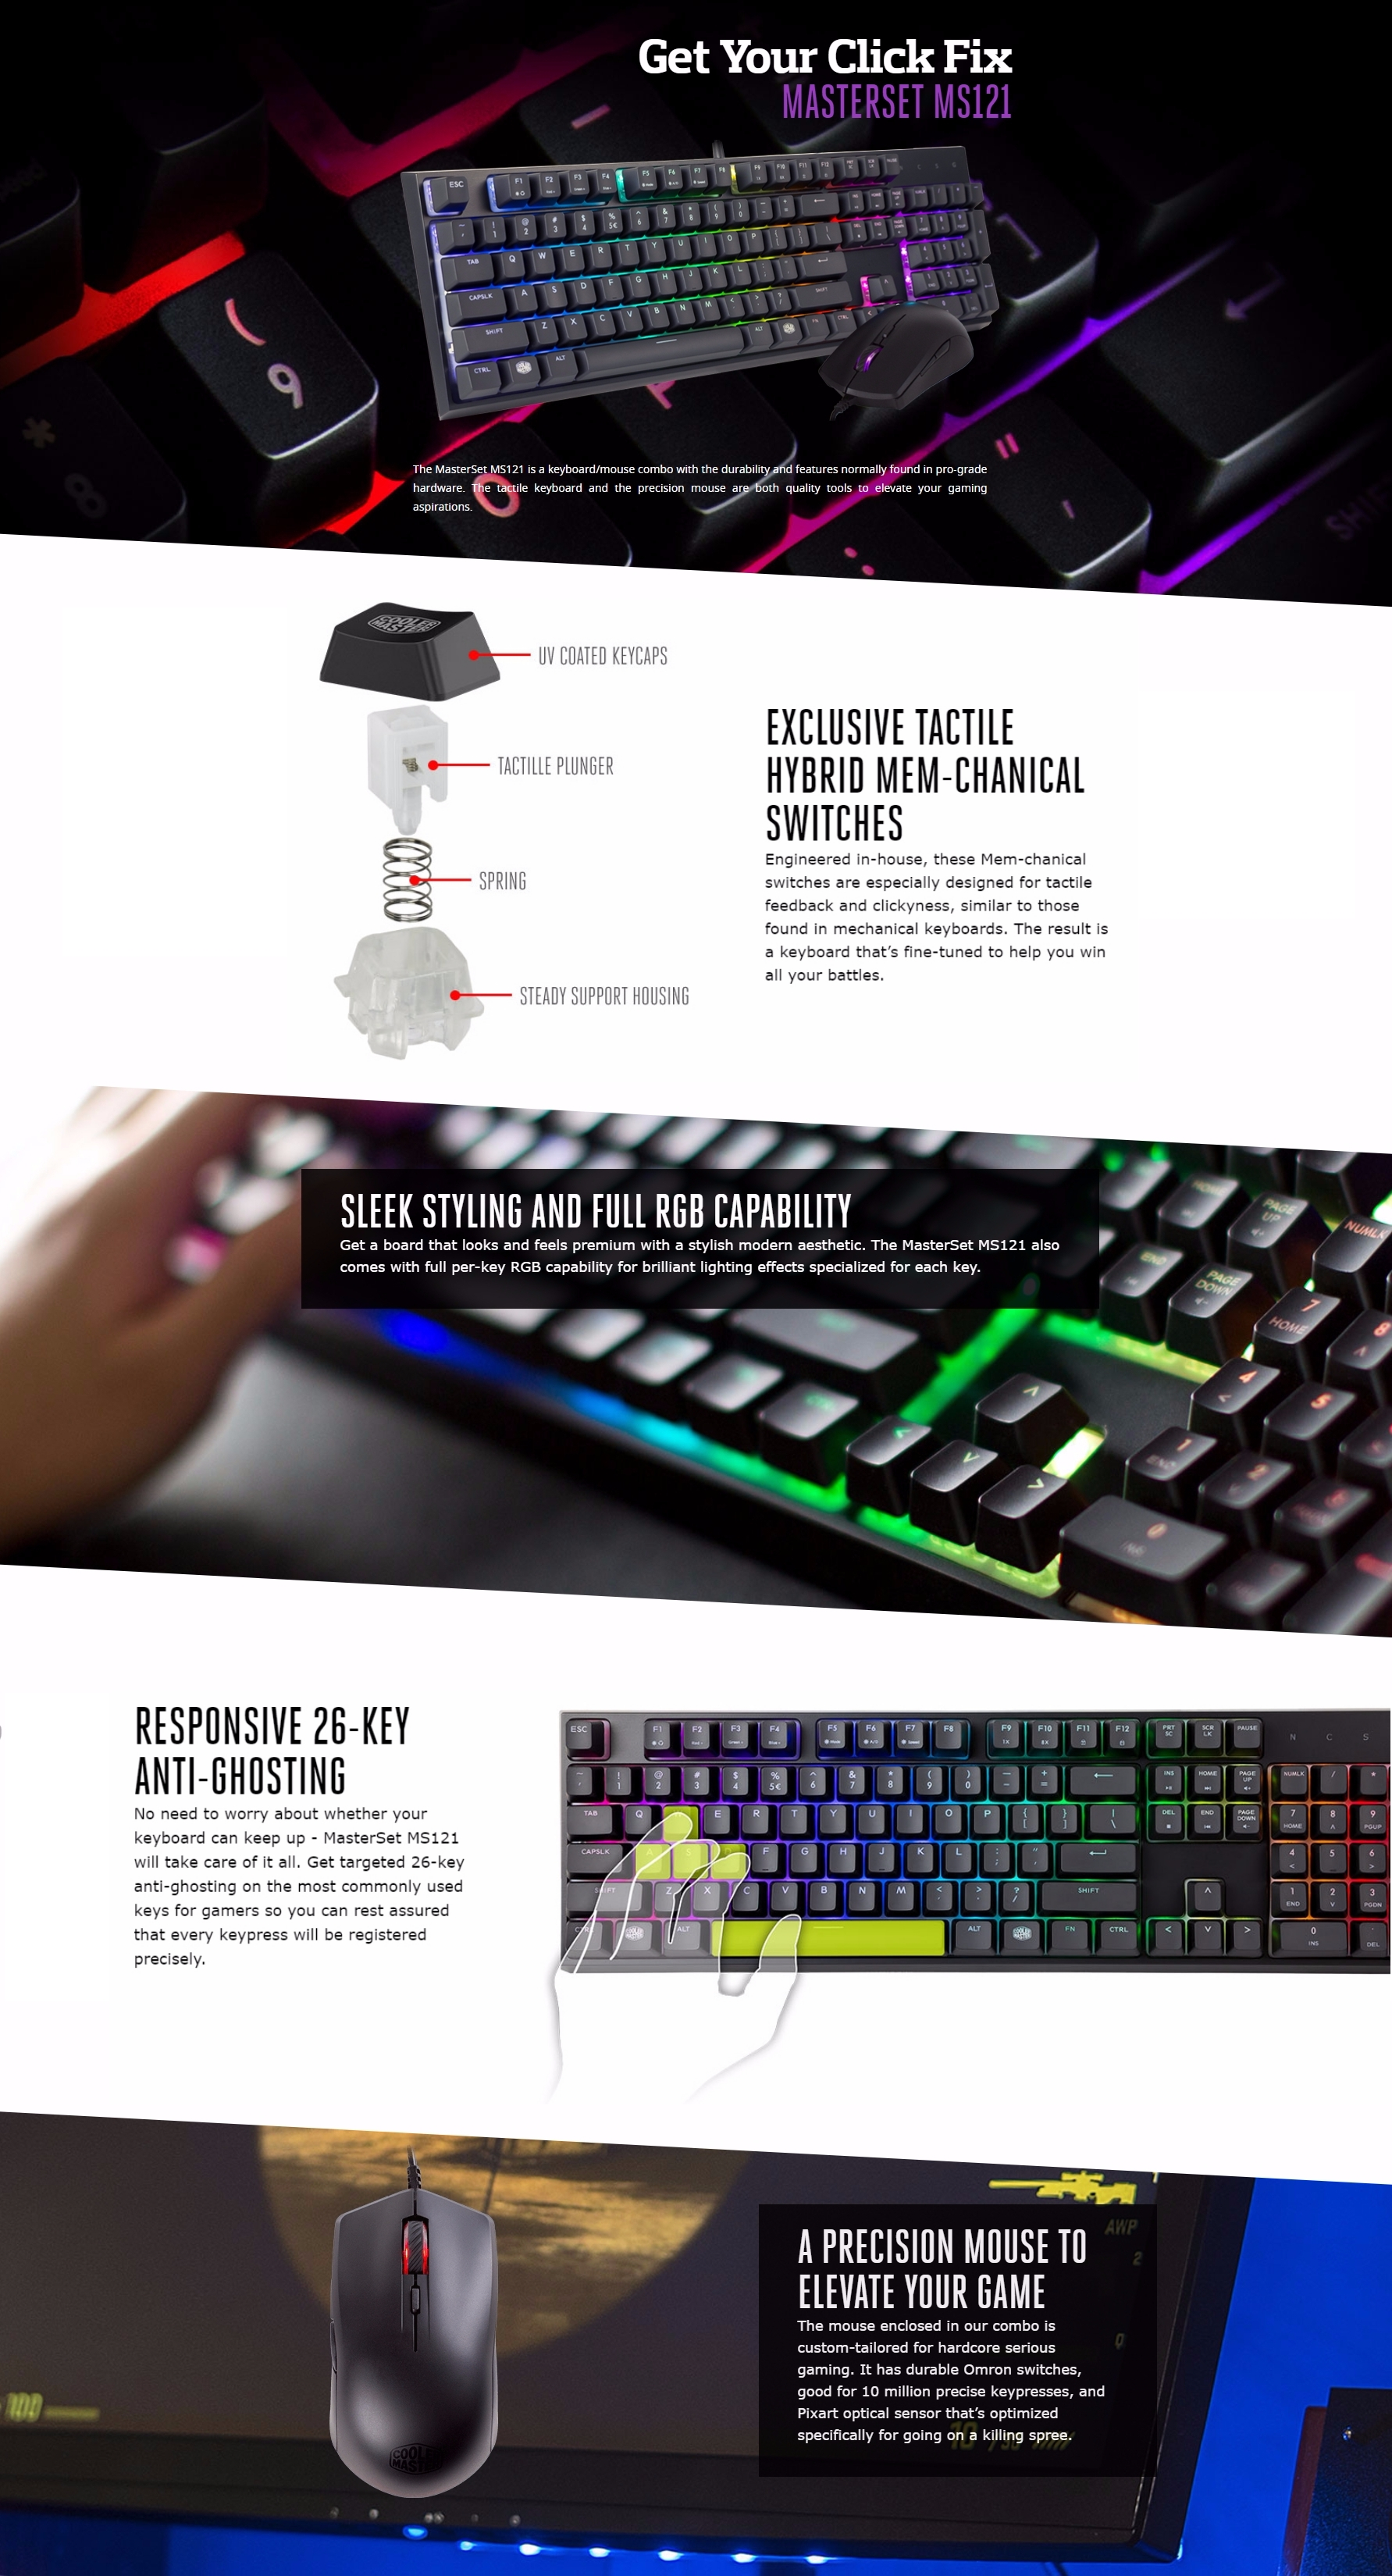 A large marketing image providing additional information about the product Cooler Master MasterSet MS121 Independent-RGB Keyboard/Mouse Combo Kit - Additional alt info not provided